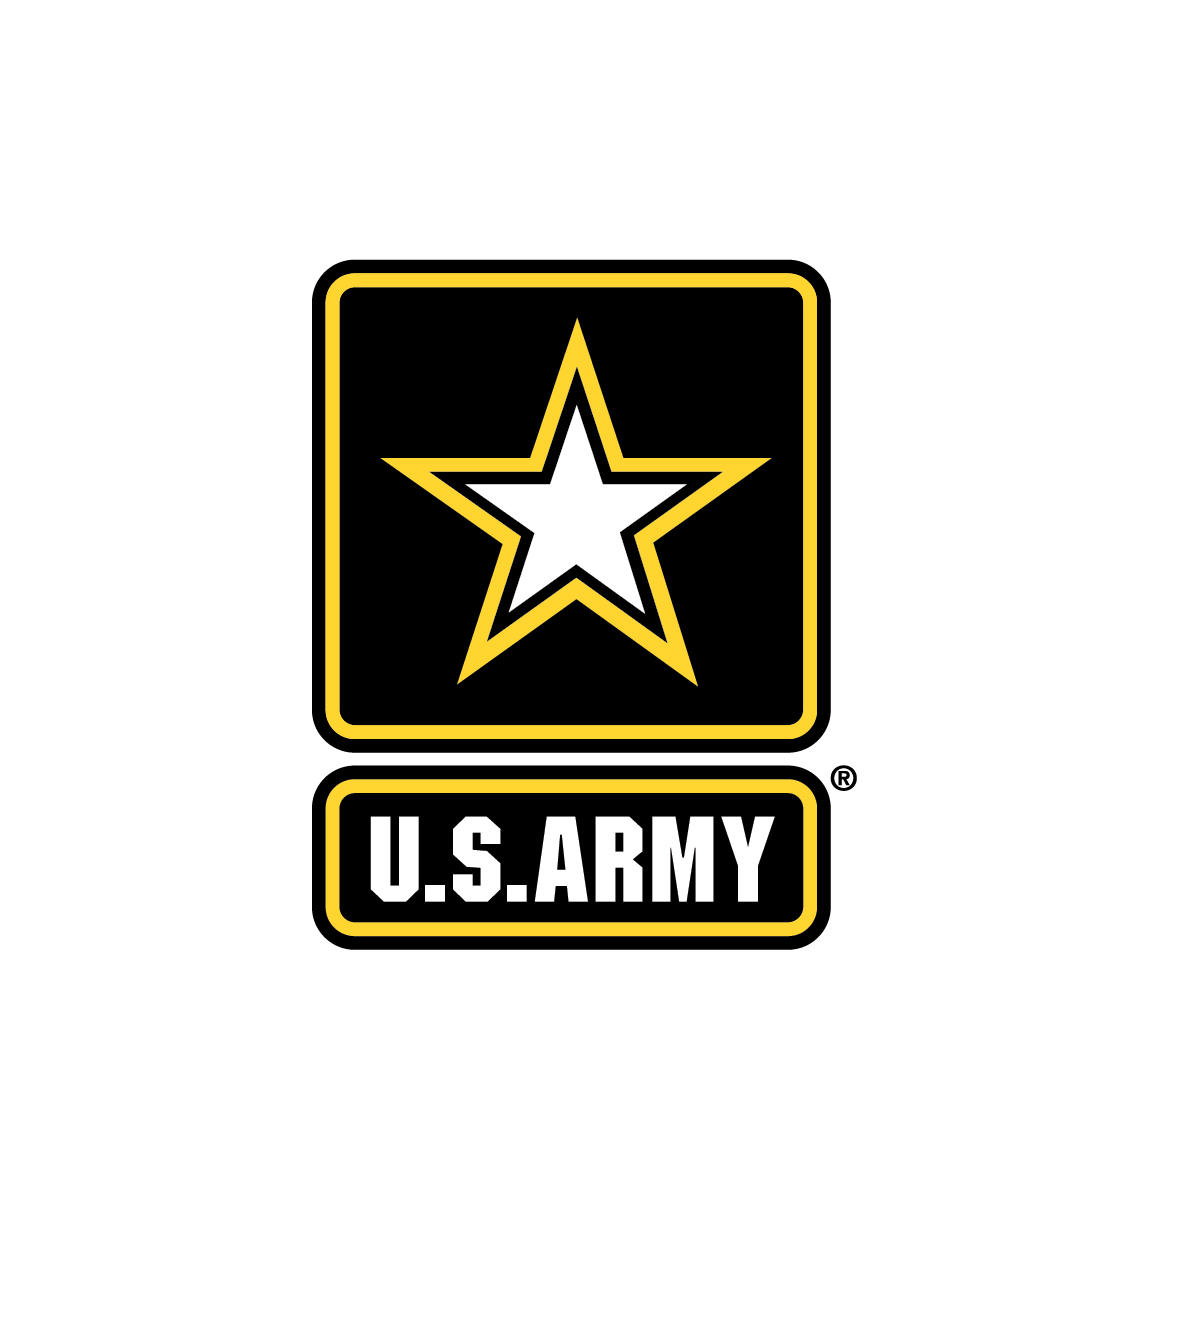 Us army logo and branding guide mwr jpg